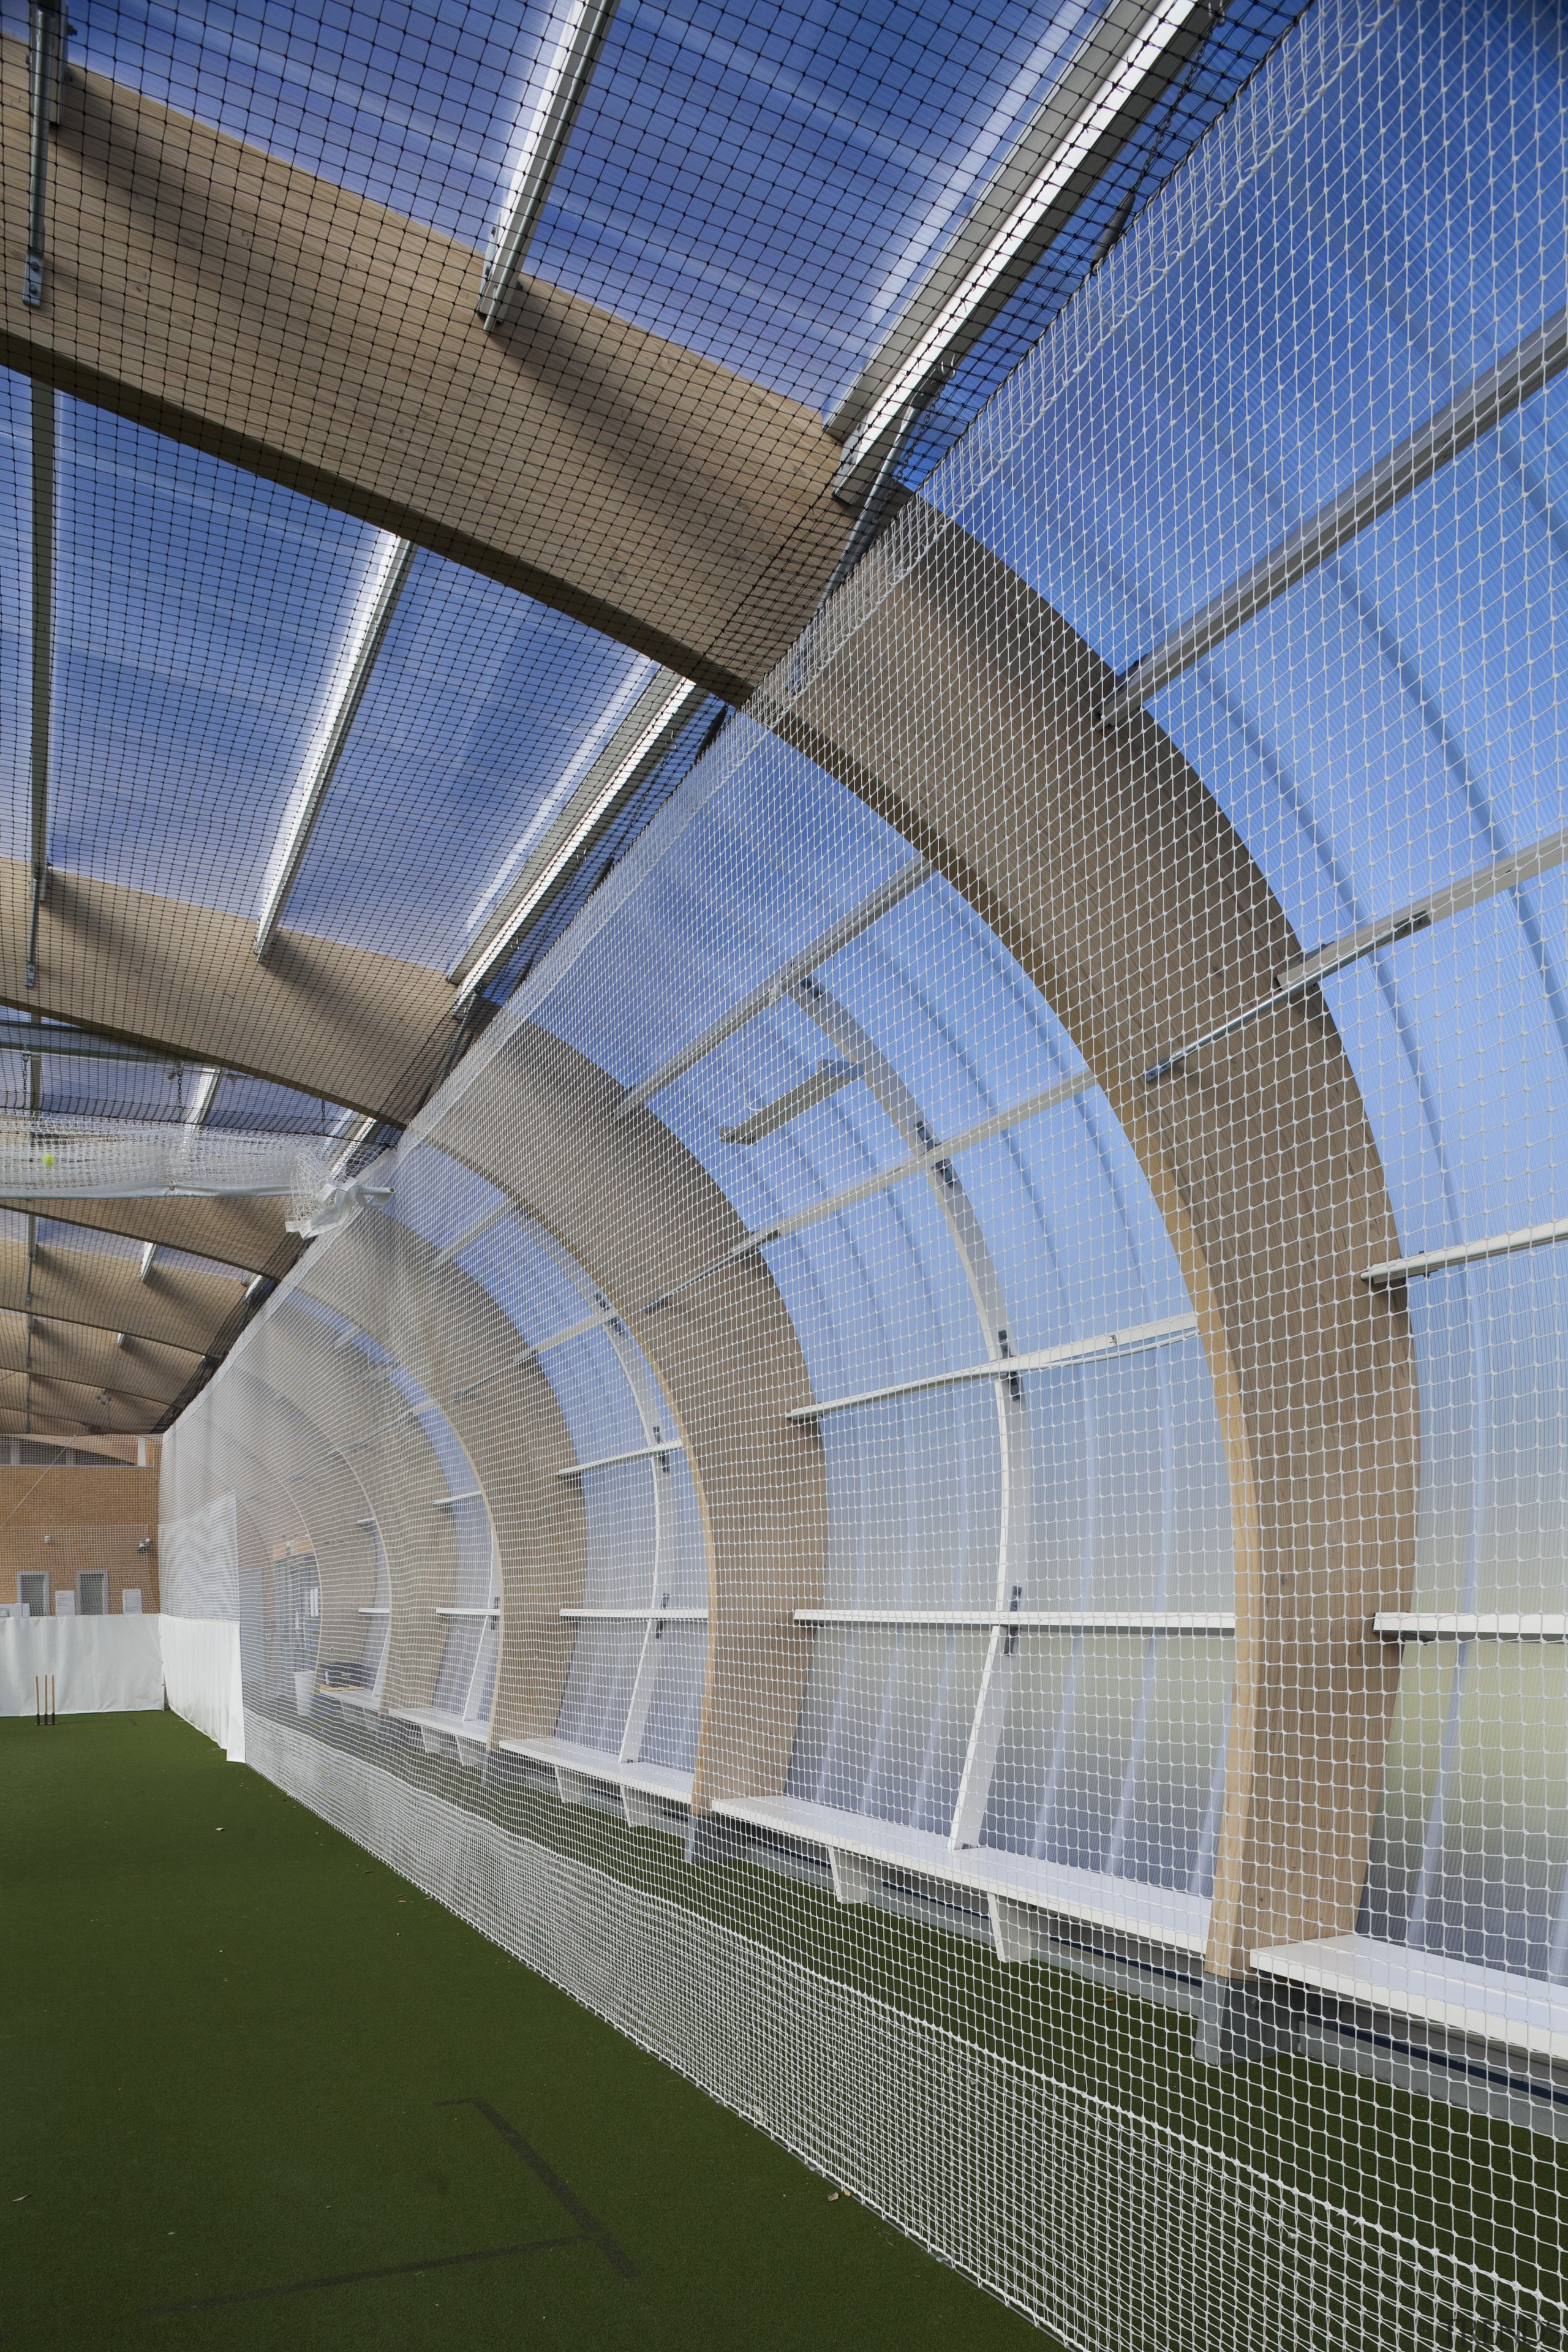 Detail of curved roof. - Detail of curved architecture, atmosphere of earth, daylighting, daytime, facade, headquarters, line, net, sky, sport venue, stadium, structure, gray